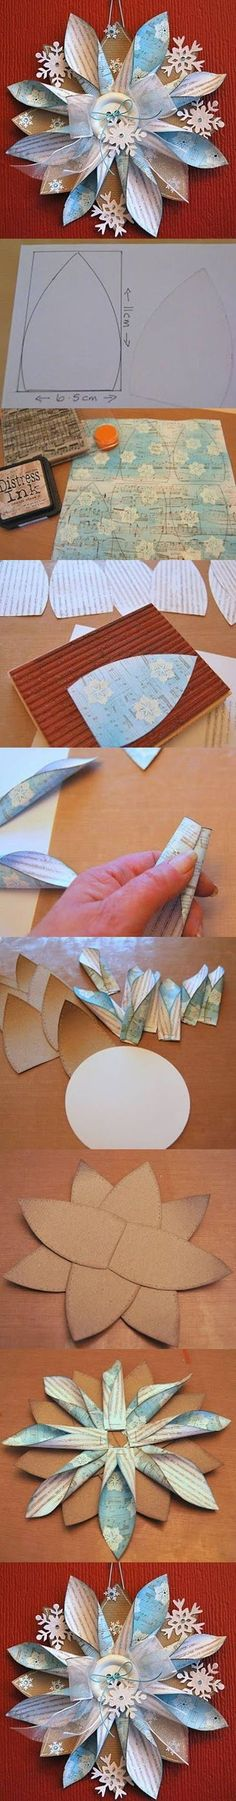 Beautiful Paper Decoration | DIY & Crafts